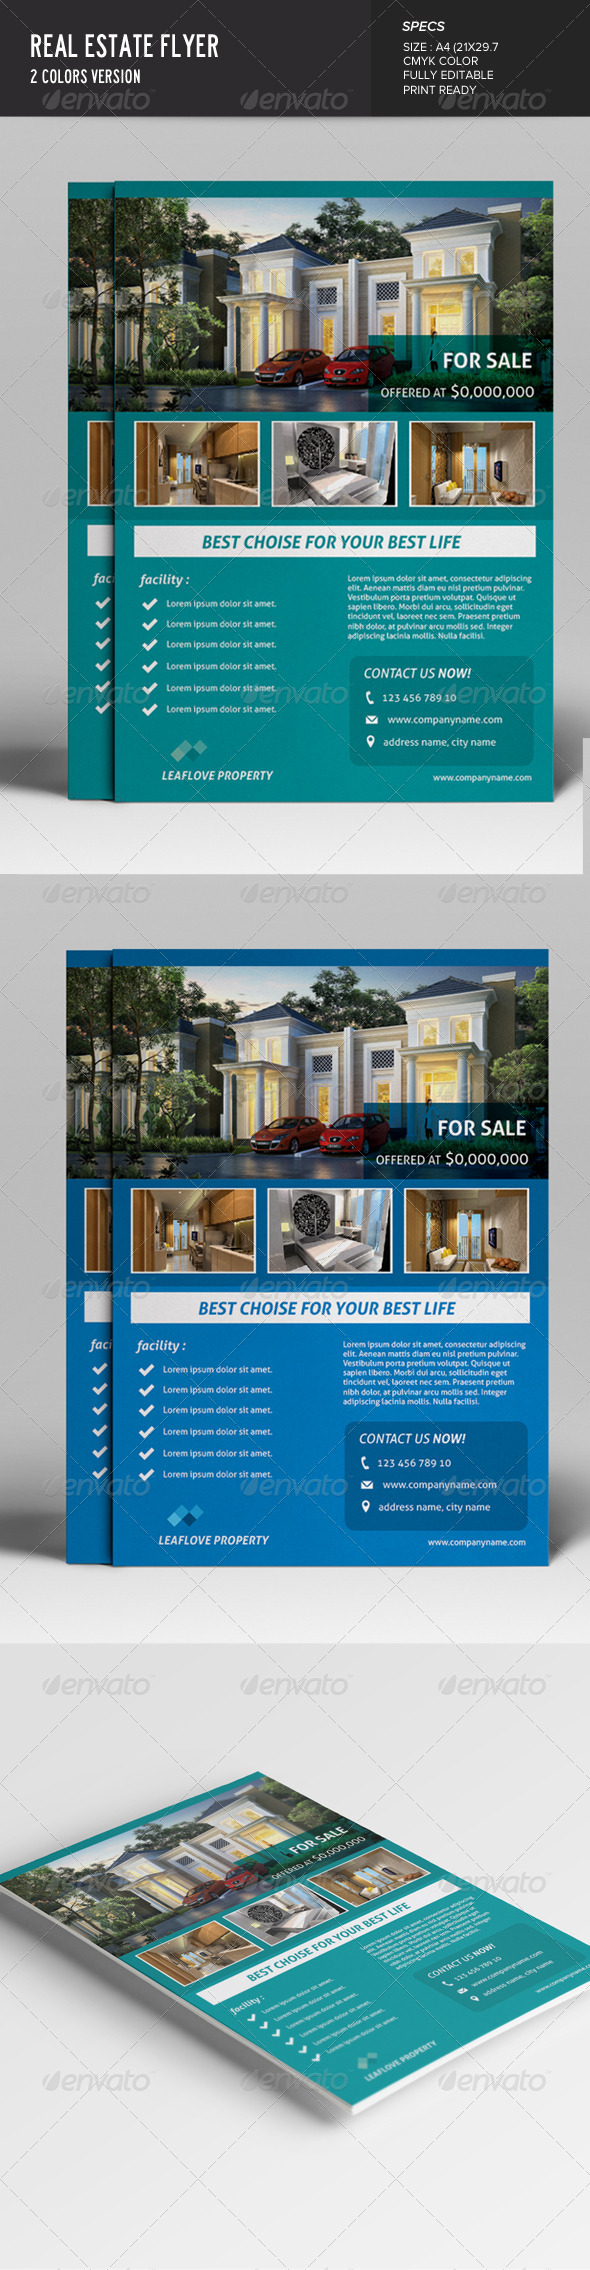 GraphicRiver Real Estate Flyer 7628972